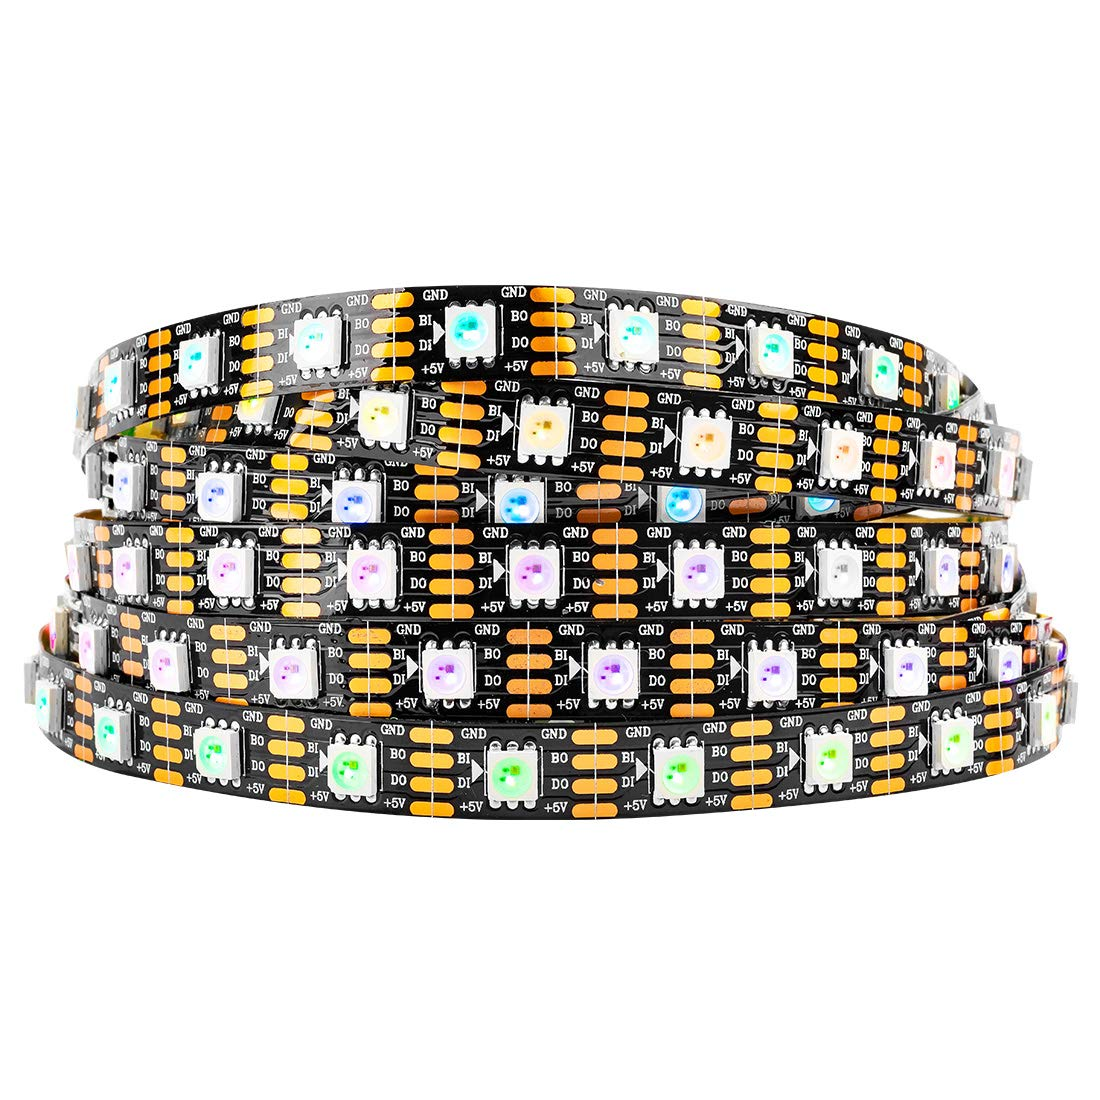 BTF-LIGHTING WS2813 (Upgraded WS2812B) 16.4ft 300 Pixels Magic Dream Farbe Individually Addressable RGB LED Flexible Strip Light 5050 SMD Dual Signal Wires IP30 Not Waterproof DC 5V schwarz PCB